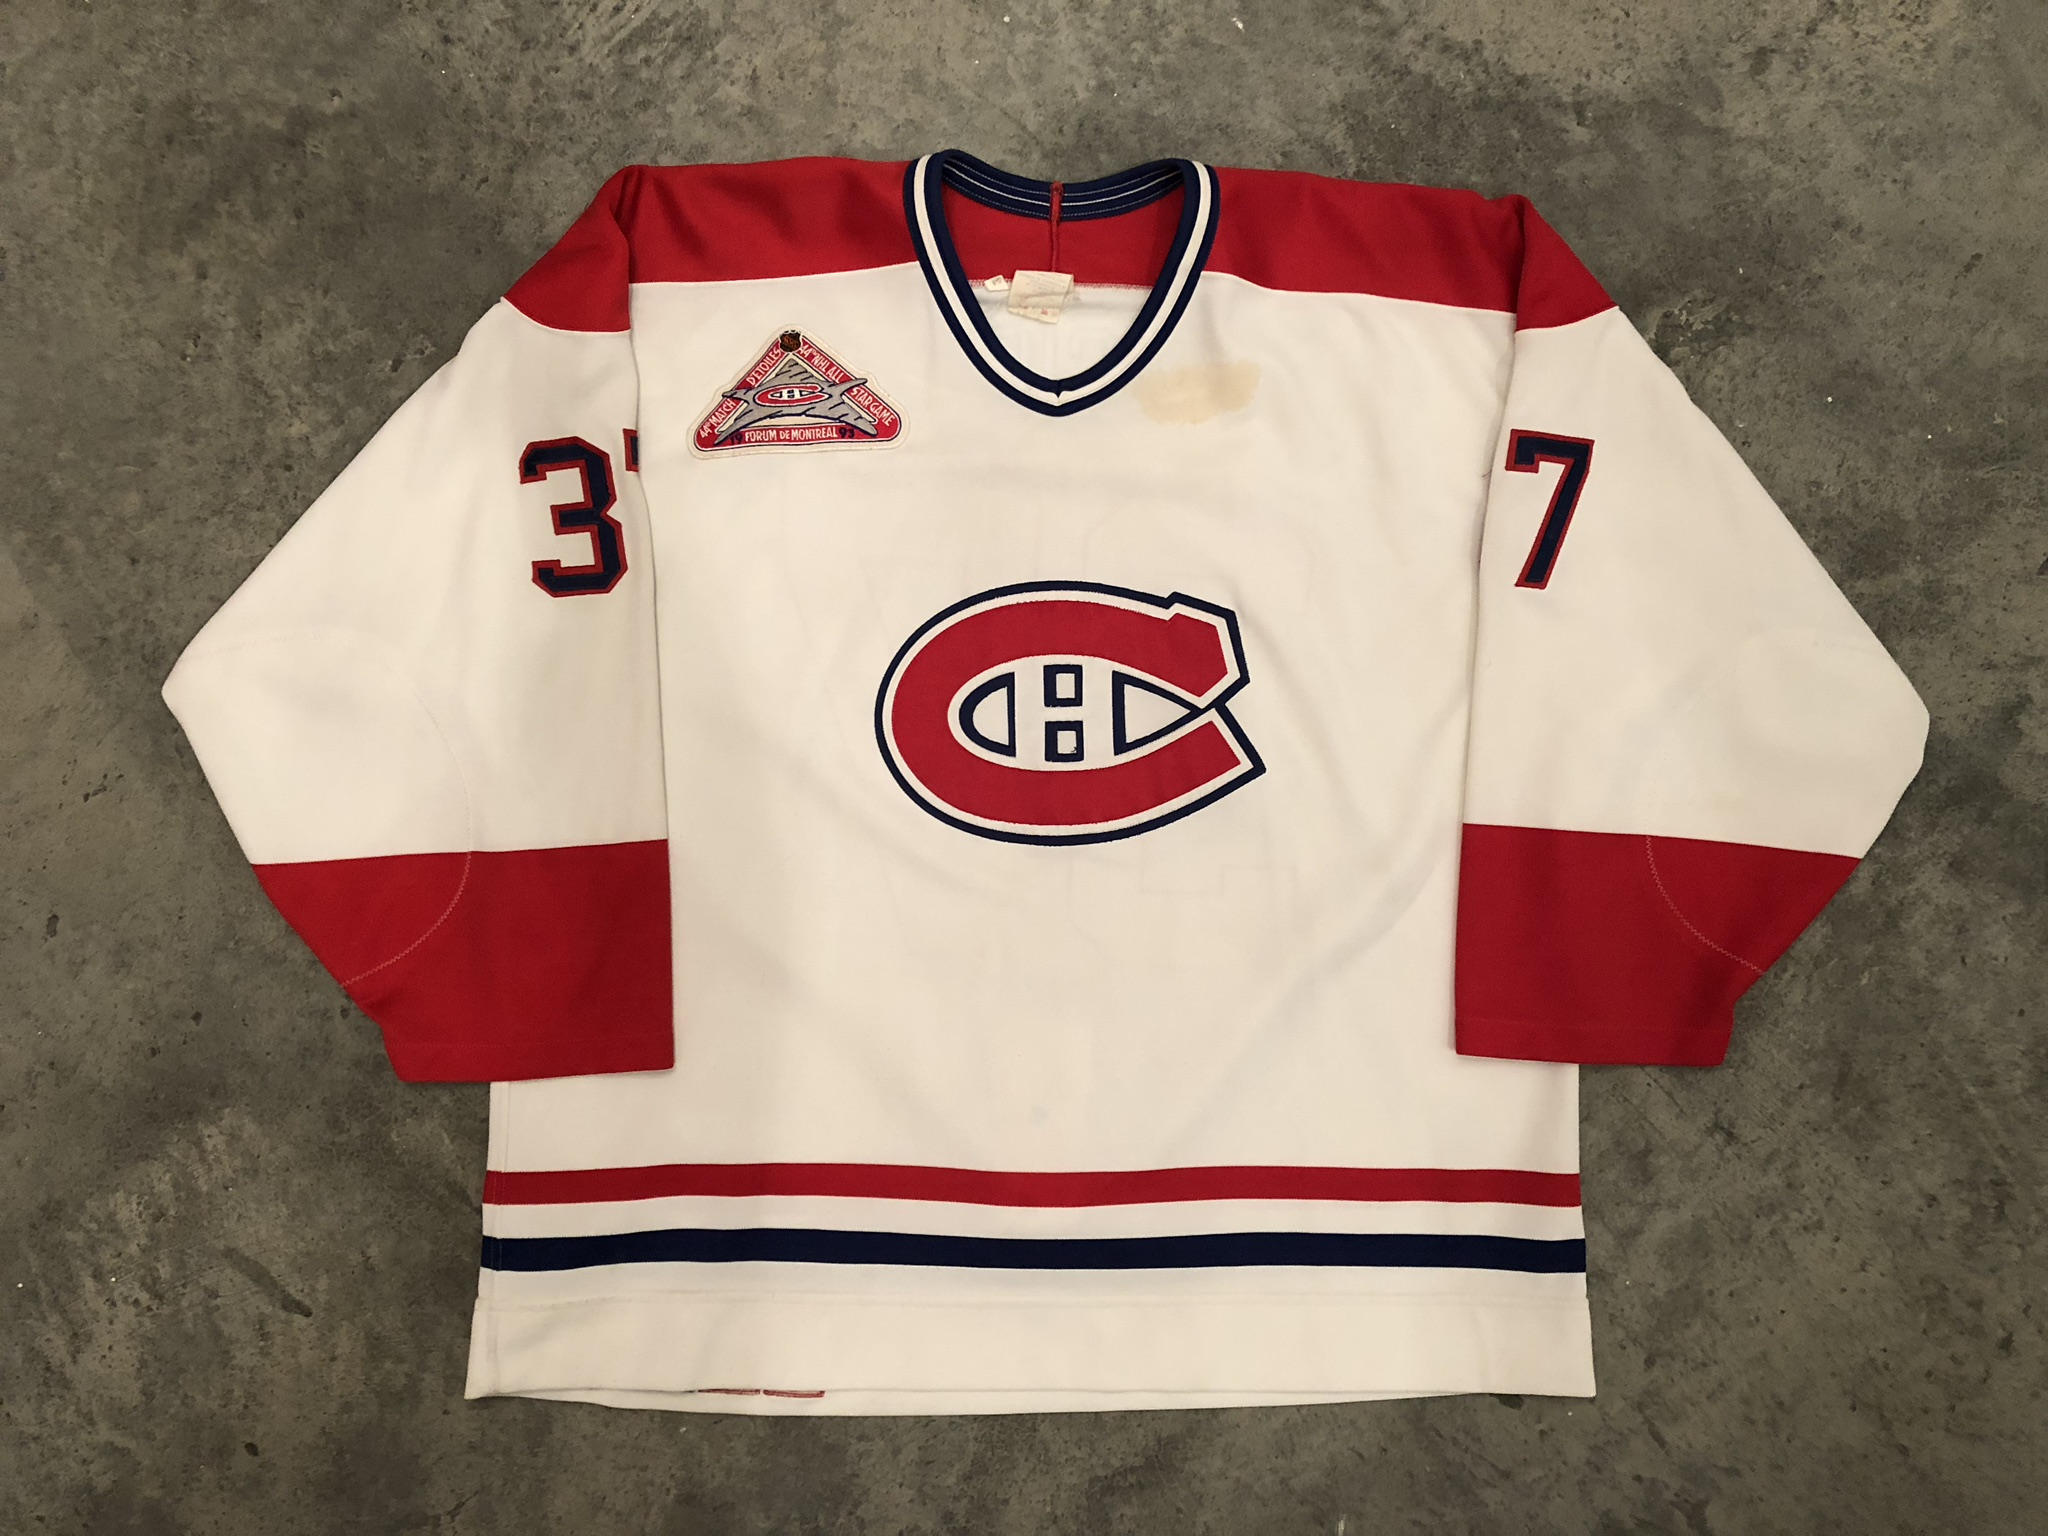 1992-93 Andre Racicot game worn home jersey with the 1993 NHL All Star Game patch